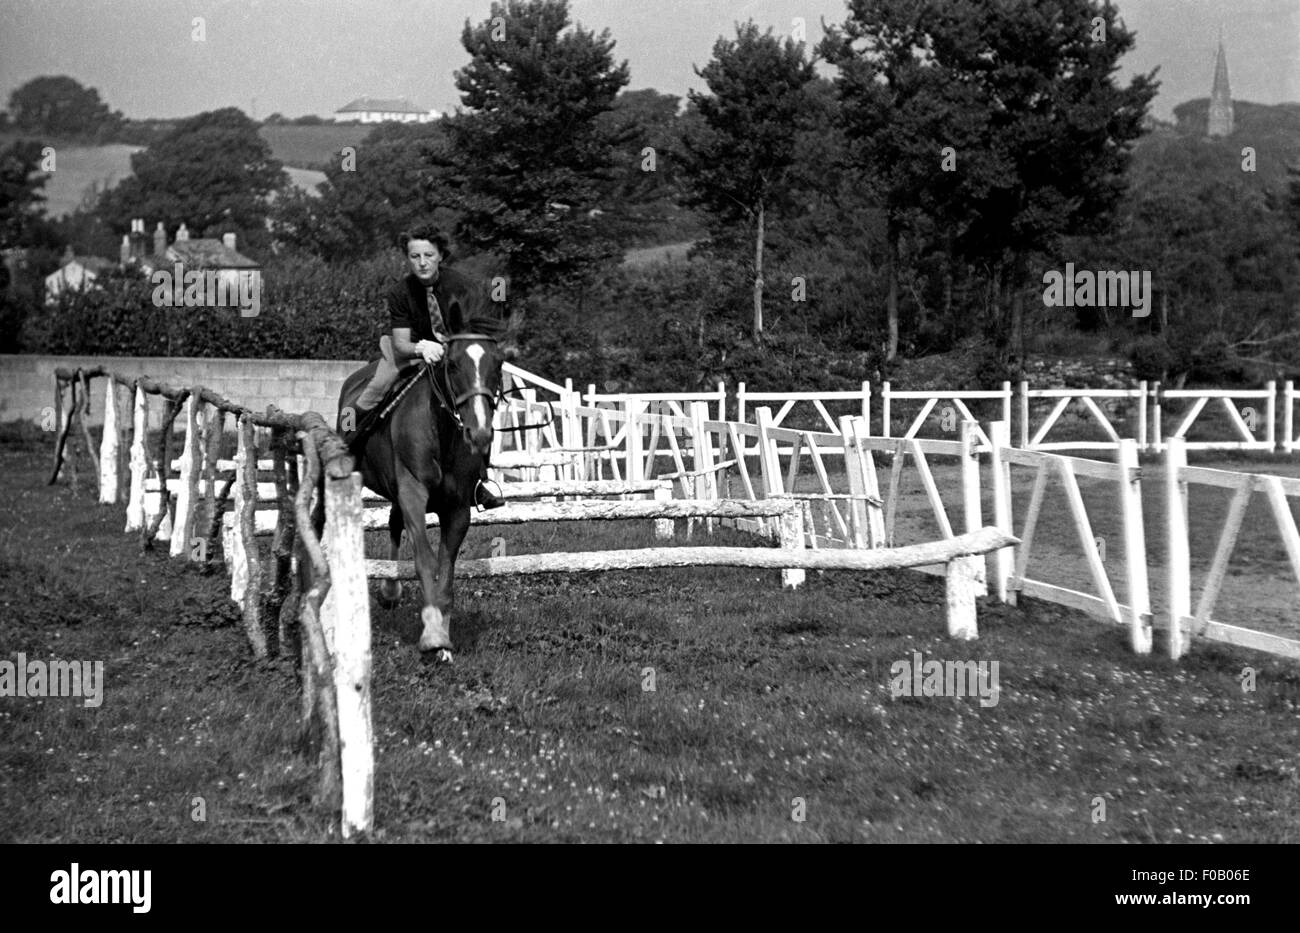 A woman practicing showjumping - Stock Image